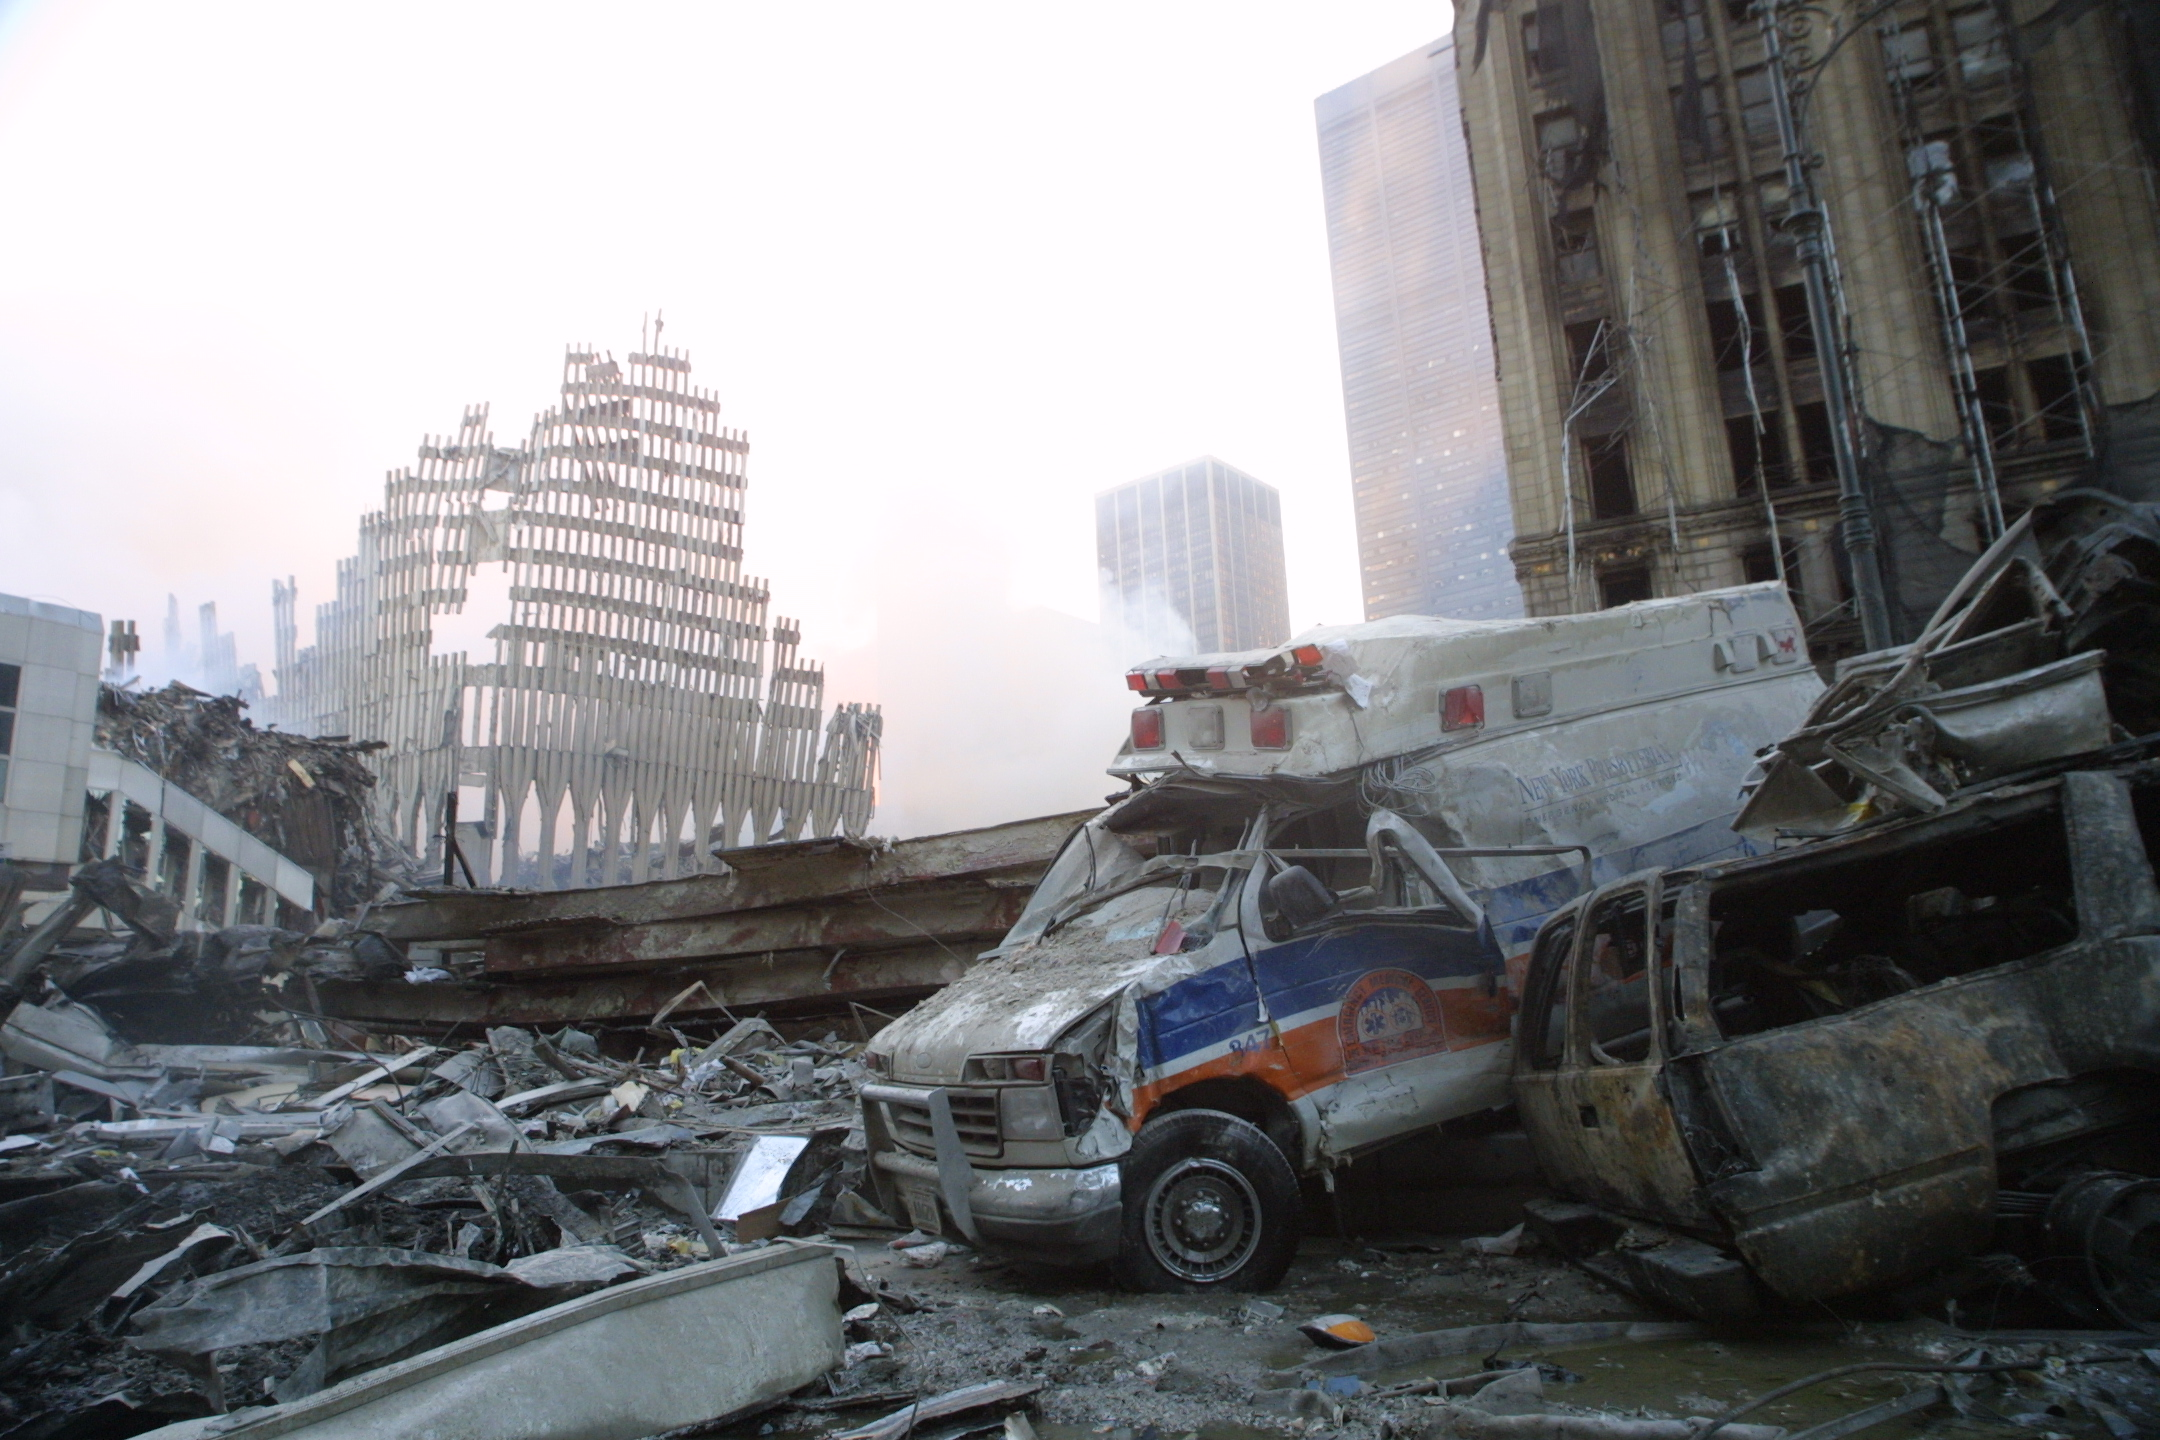 Khalifa al-Subaiy, who allegedly funded the September 11 attacks, is able to access large sums of his money. A crushed ambulance pictured here lies near the wreckage of the World Trade Center September 13, 2001 in New York City. (Mario Tama/Getty Images)